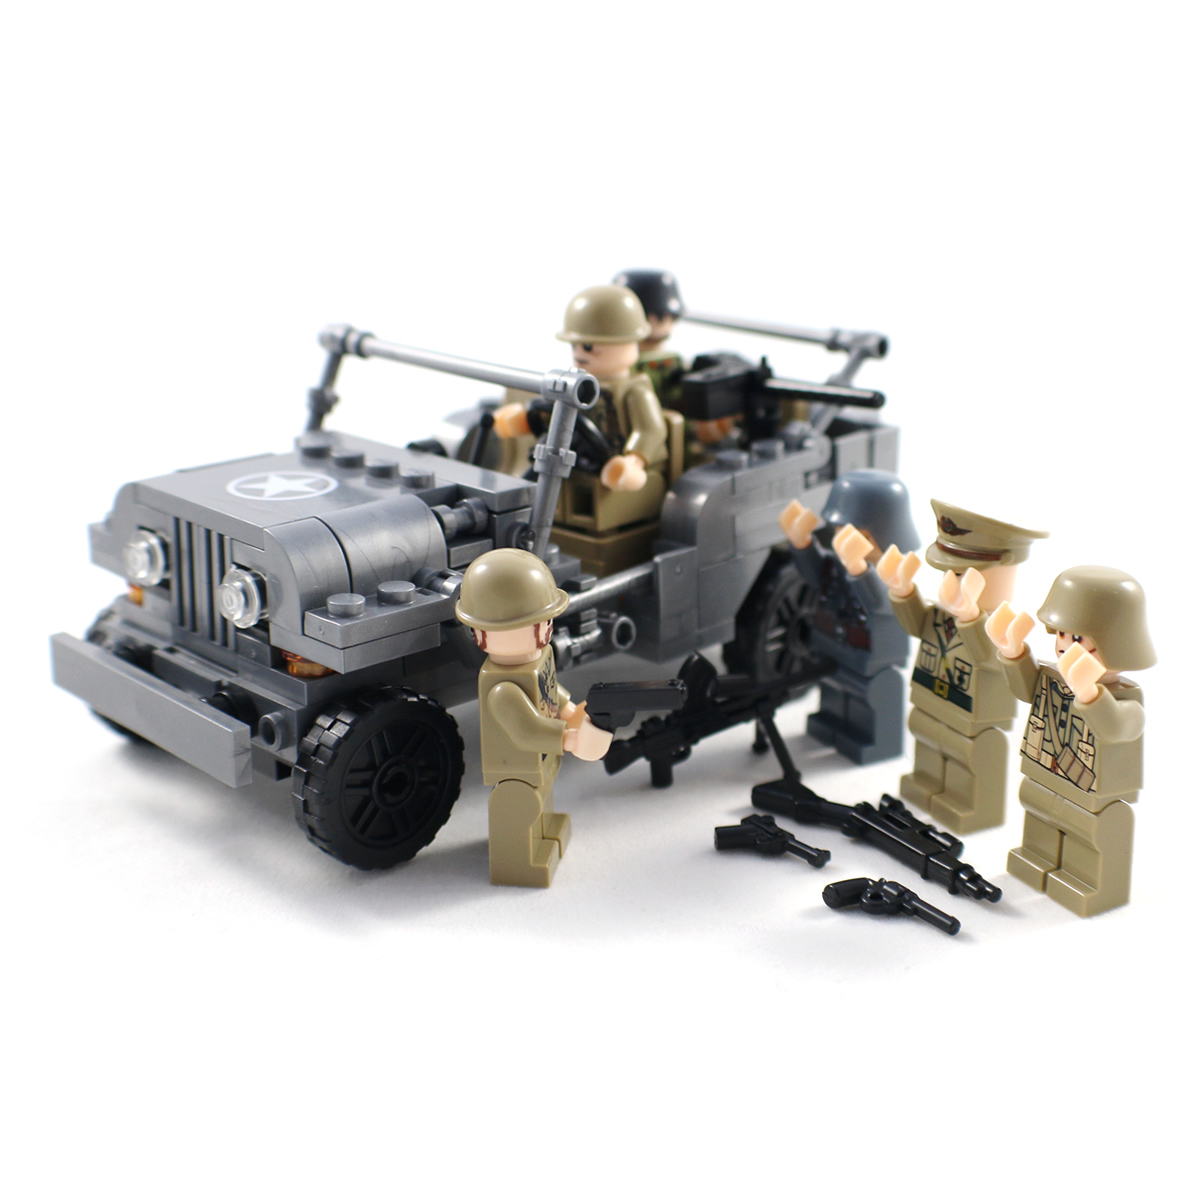 WW2 US Army Jeep with Soldier Minifigures - Lego ...